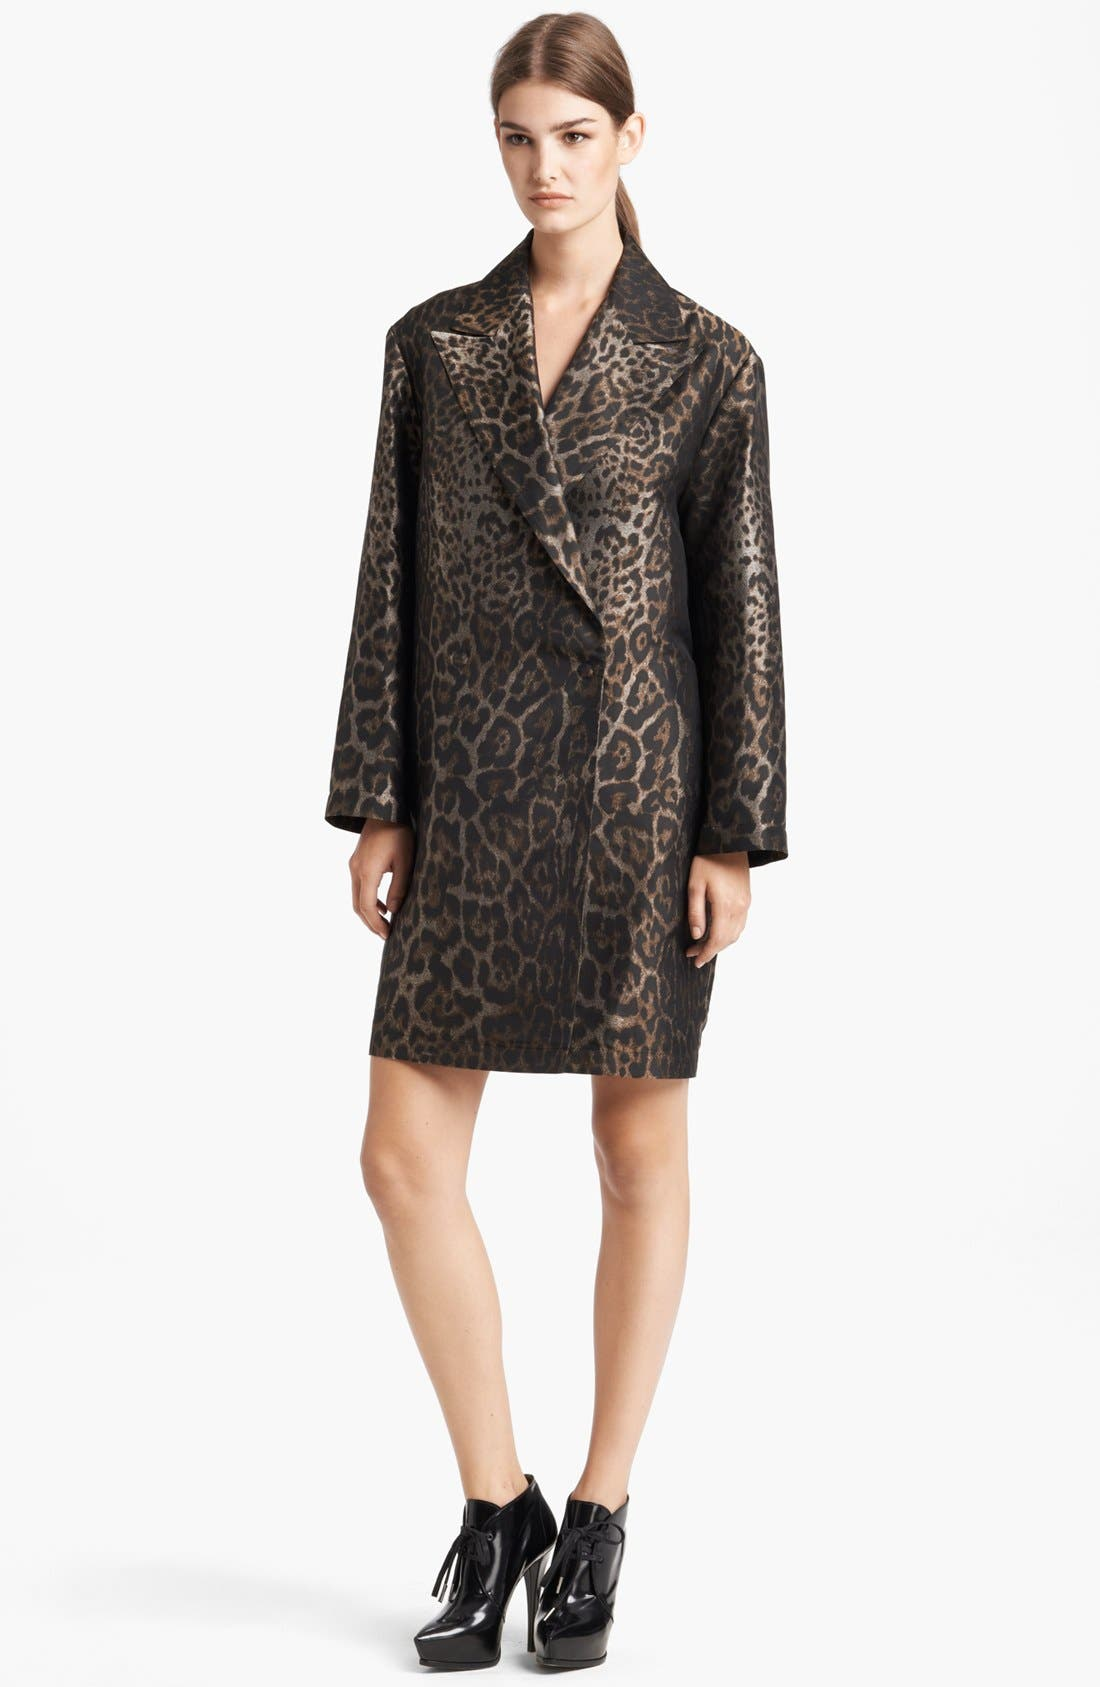 Alternate Image 1 Selected - Lanvin Jacquard Caban Coat